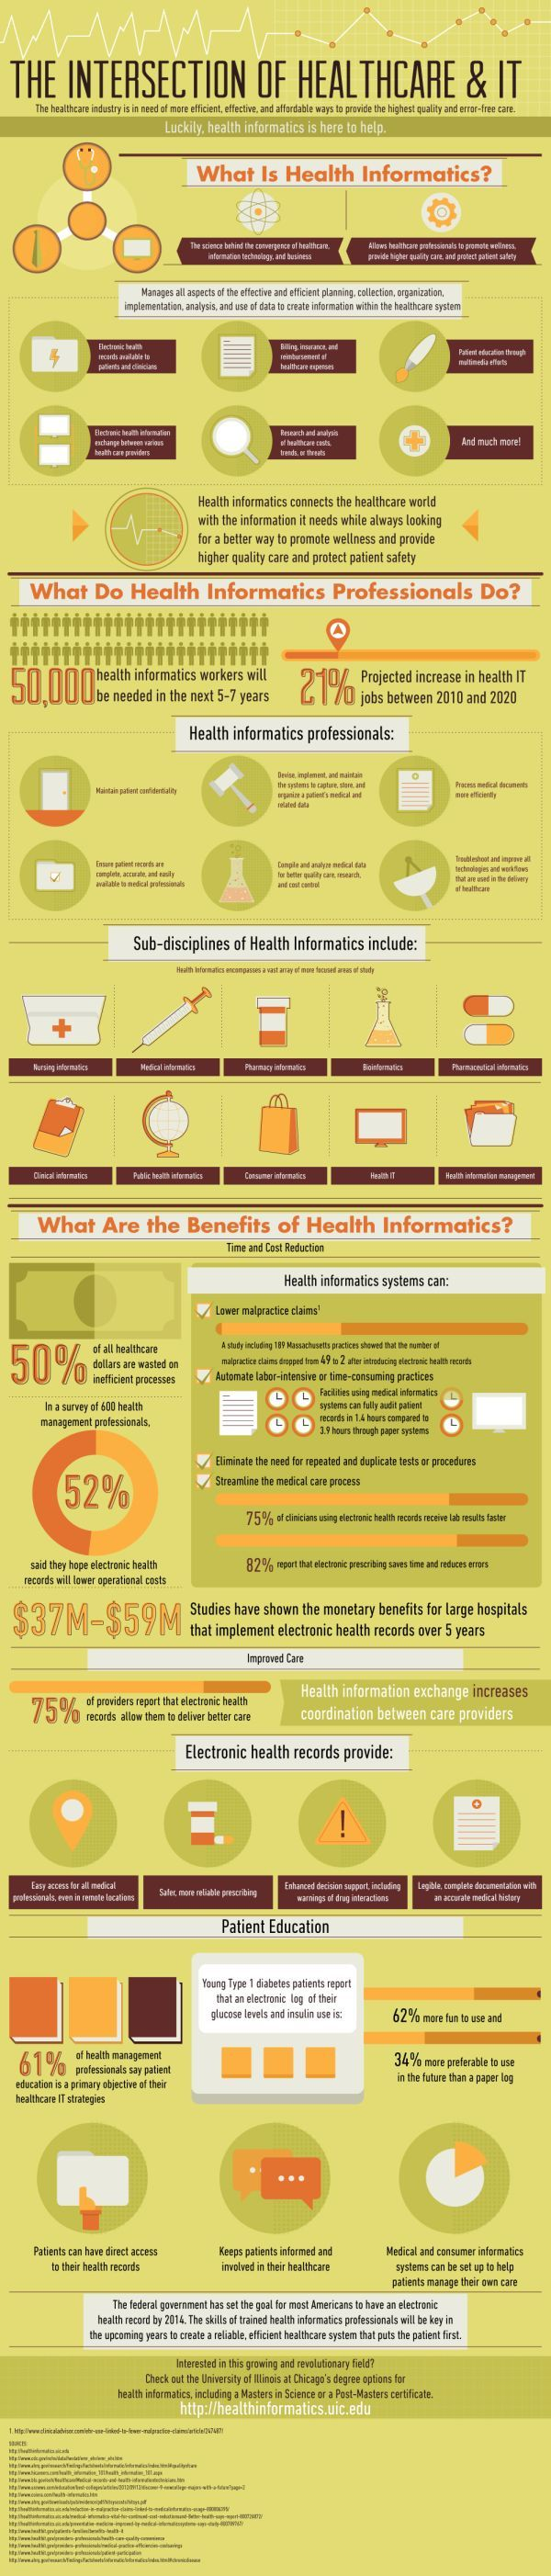 What is health informatics: The intersection of Healthcare and IT